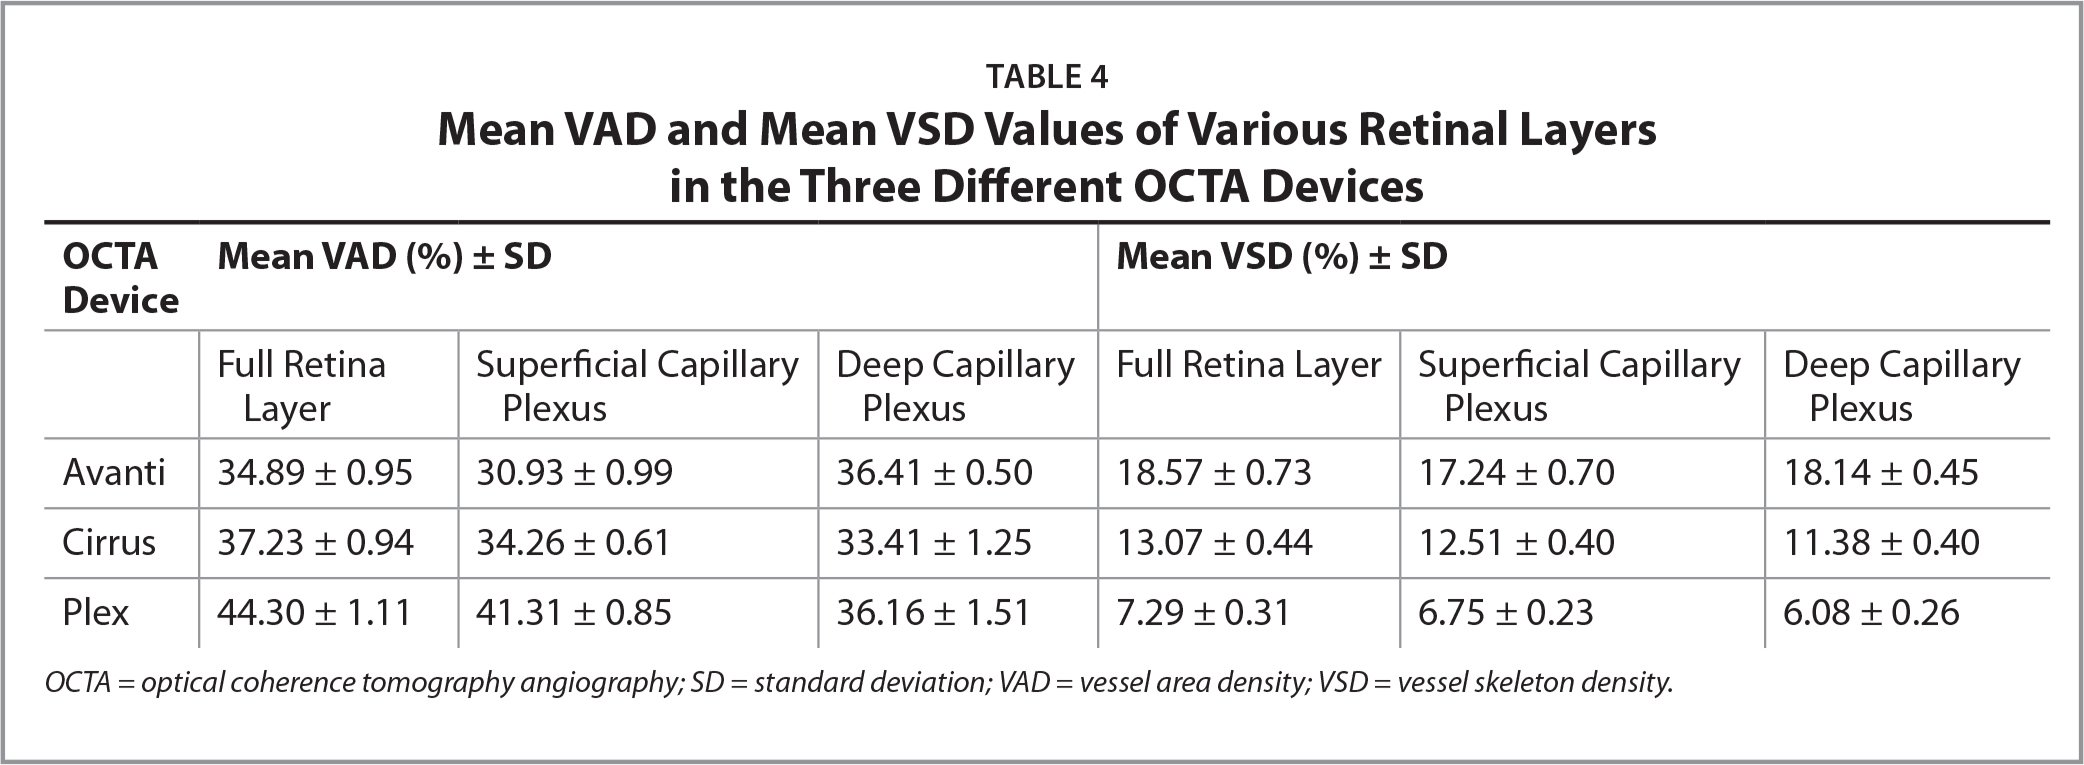 Mean VAD and Mean VSD Values of Various Retinal Layers in the Three Different OCTA Devices